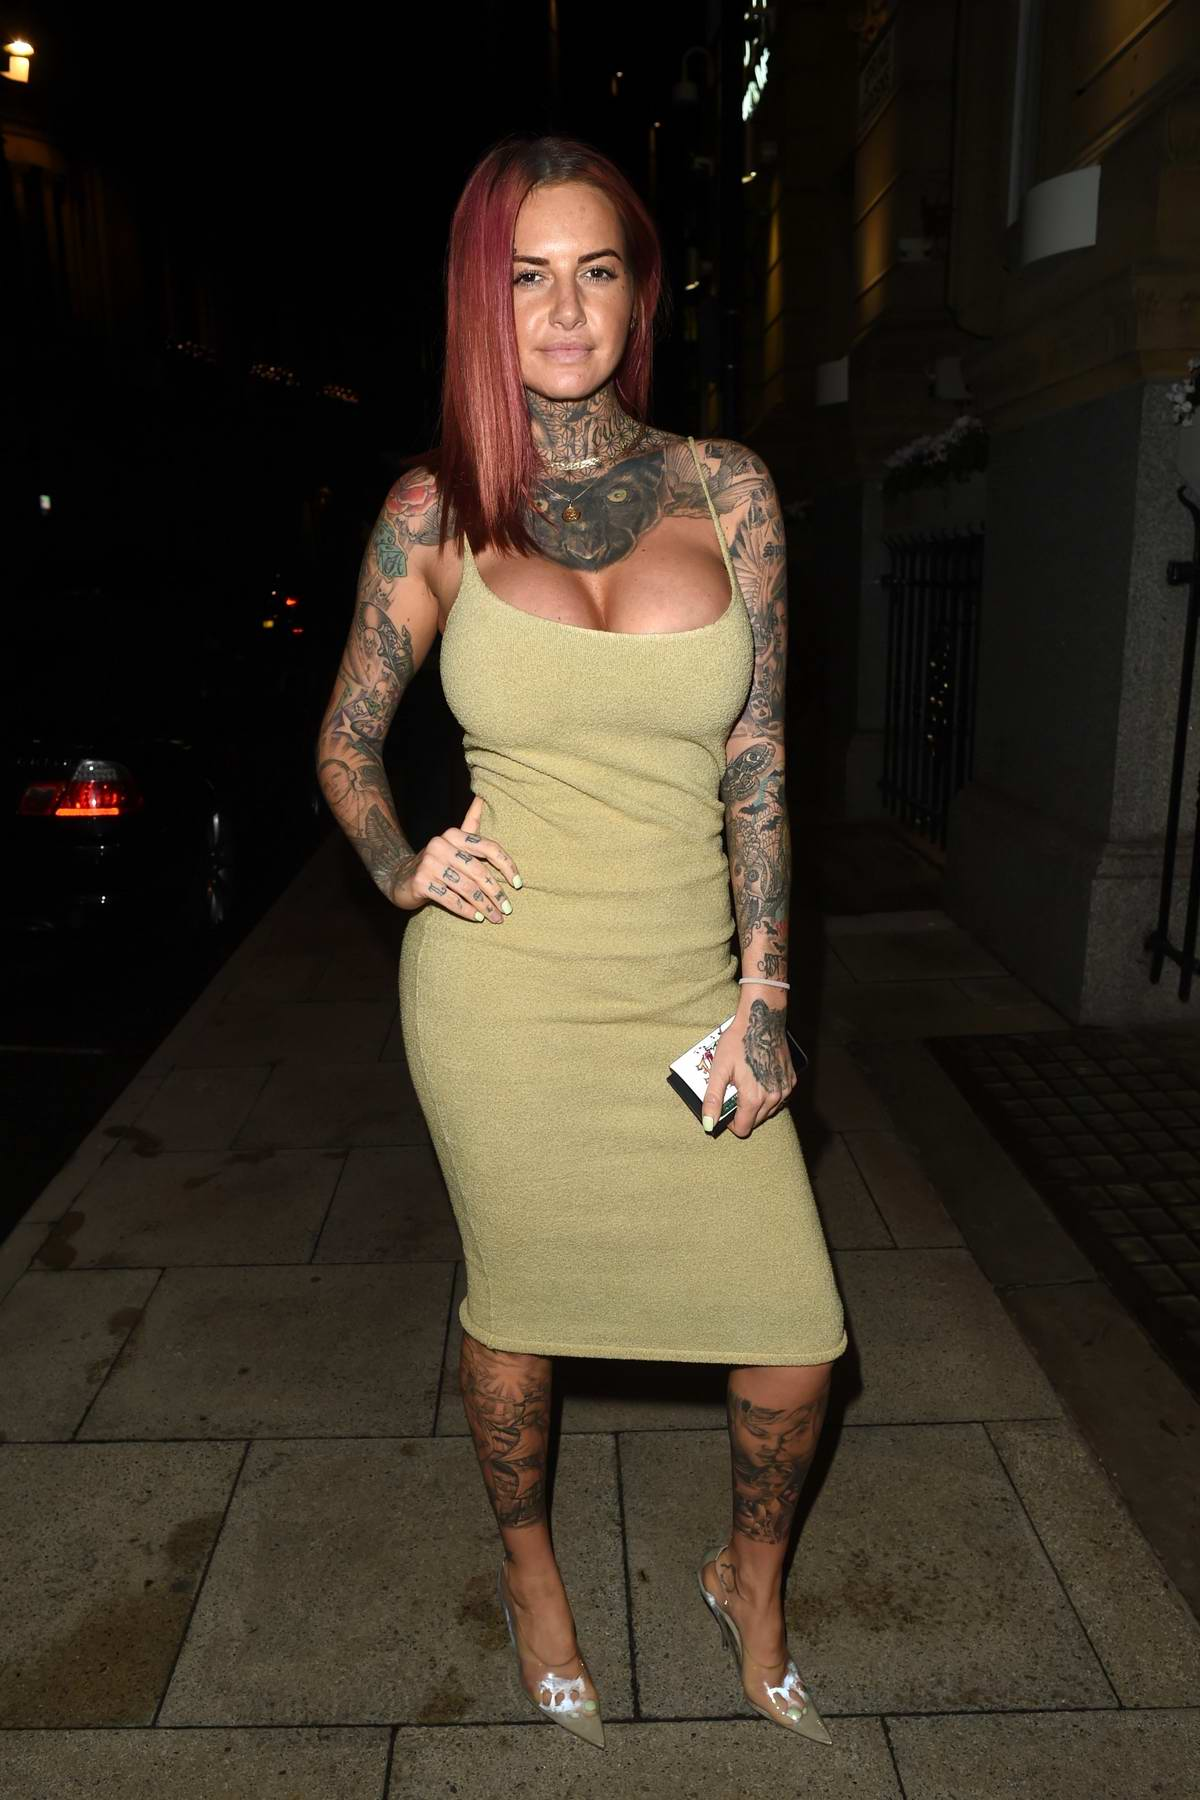 Jemma Lucy enjoys a girl's night out at Rosso restaurant in Manchester, UK